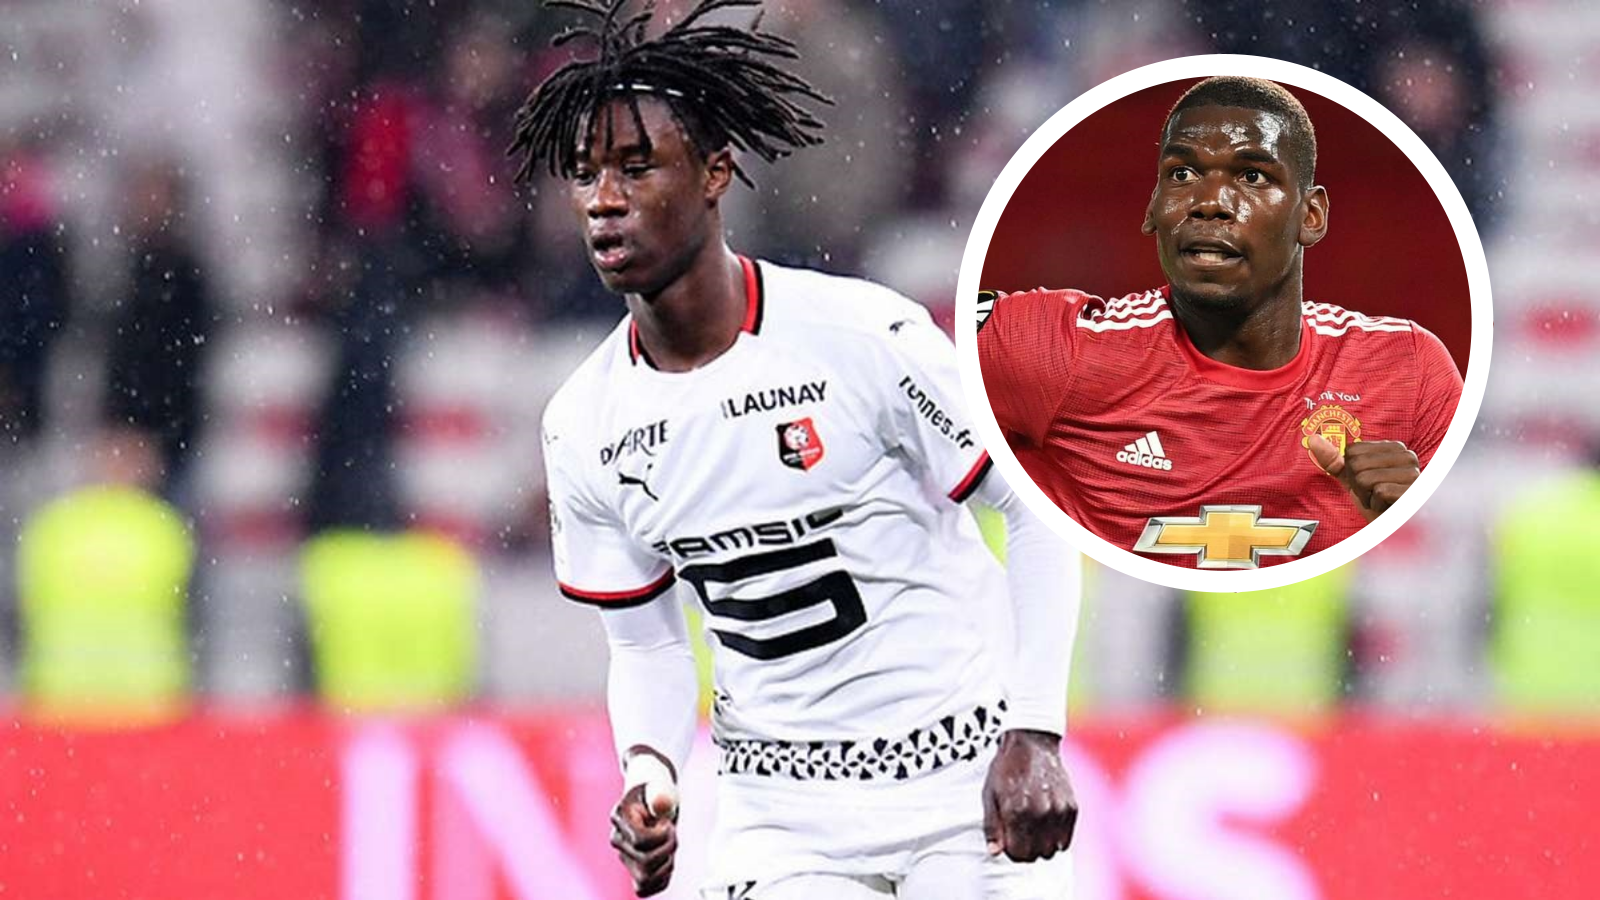 'I'm inspired by Pogba' - France wonderkid Camavinga hails influence of Man Utd star